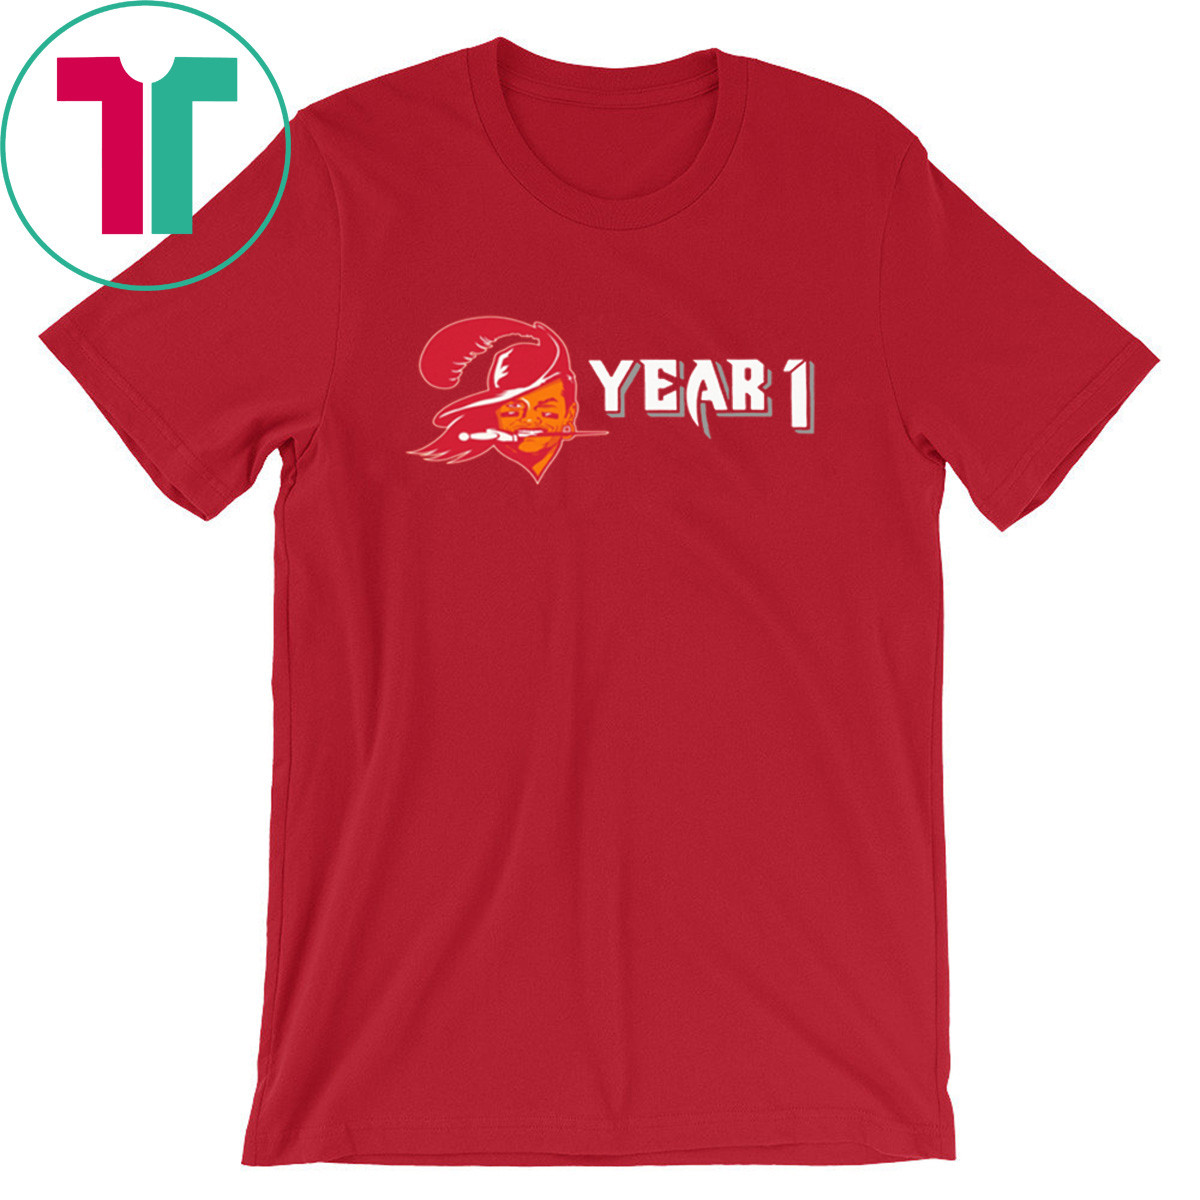 YEAR 1 SHIRT TOM BRADY